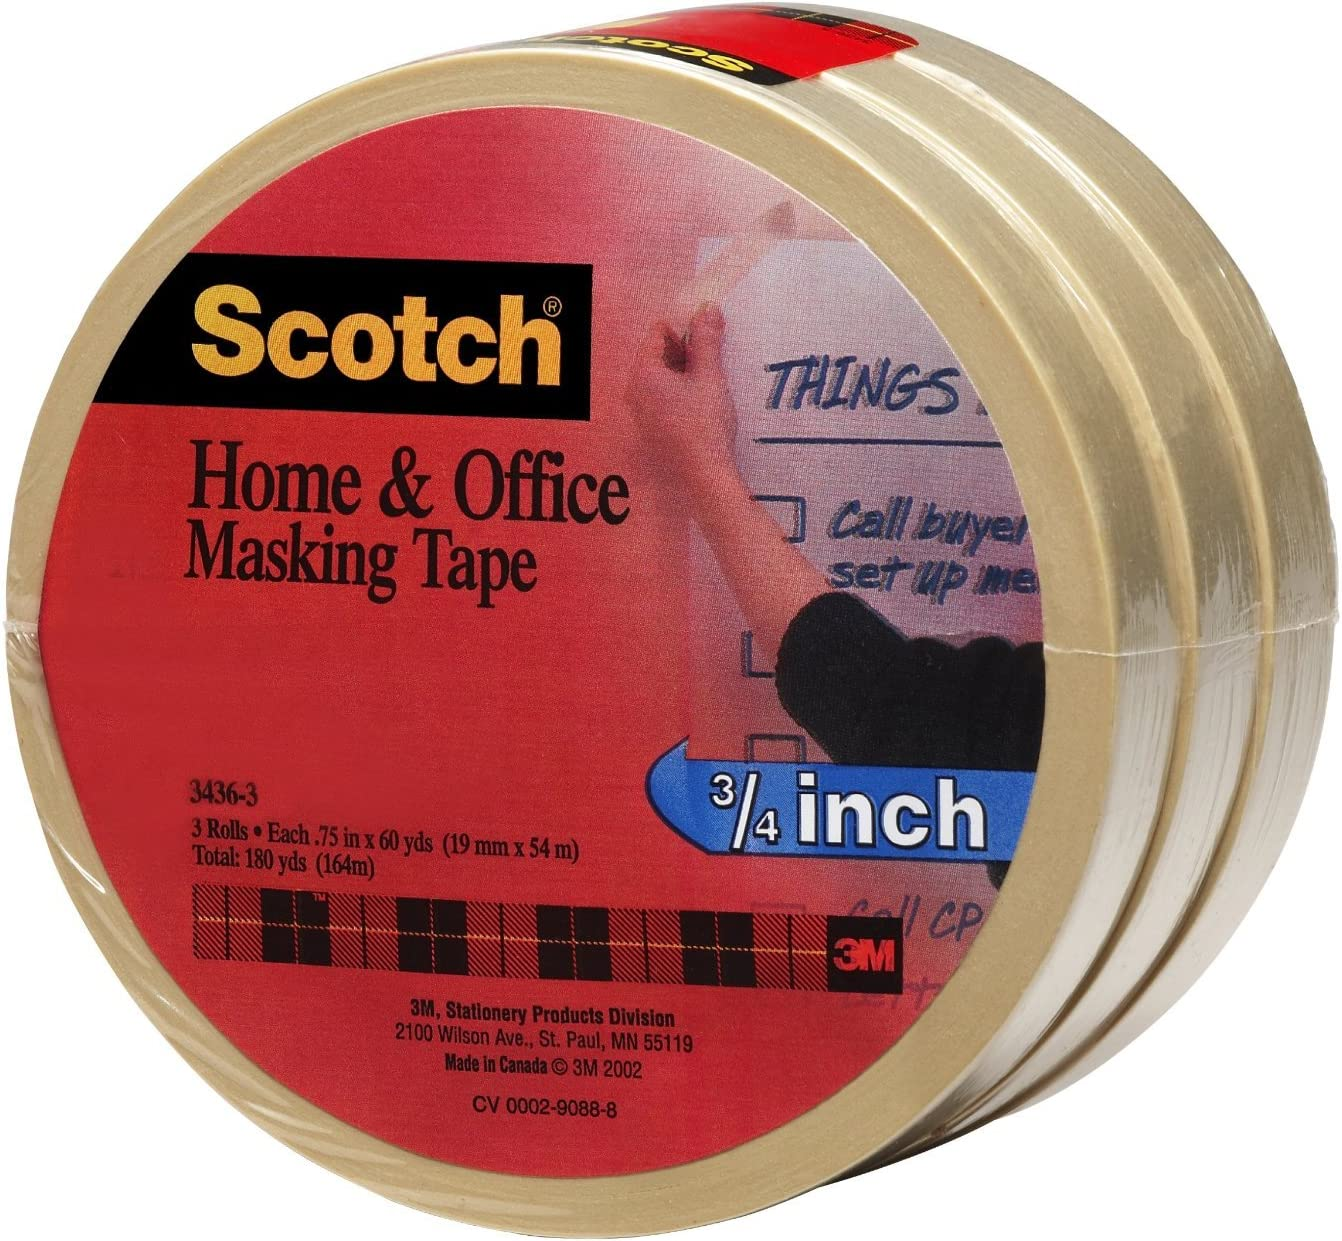 Scotch(R) Home and Office Masking Tape 3436-3, 3/4-inch x 60 Yards, 6 Rolls